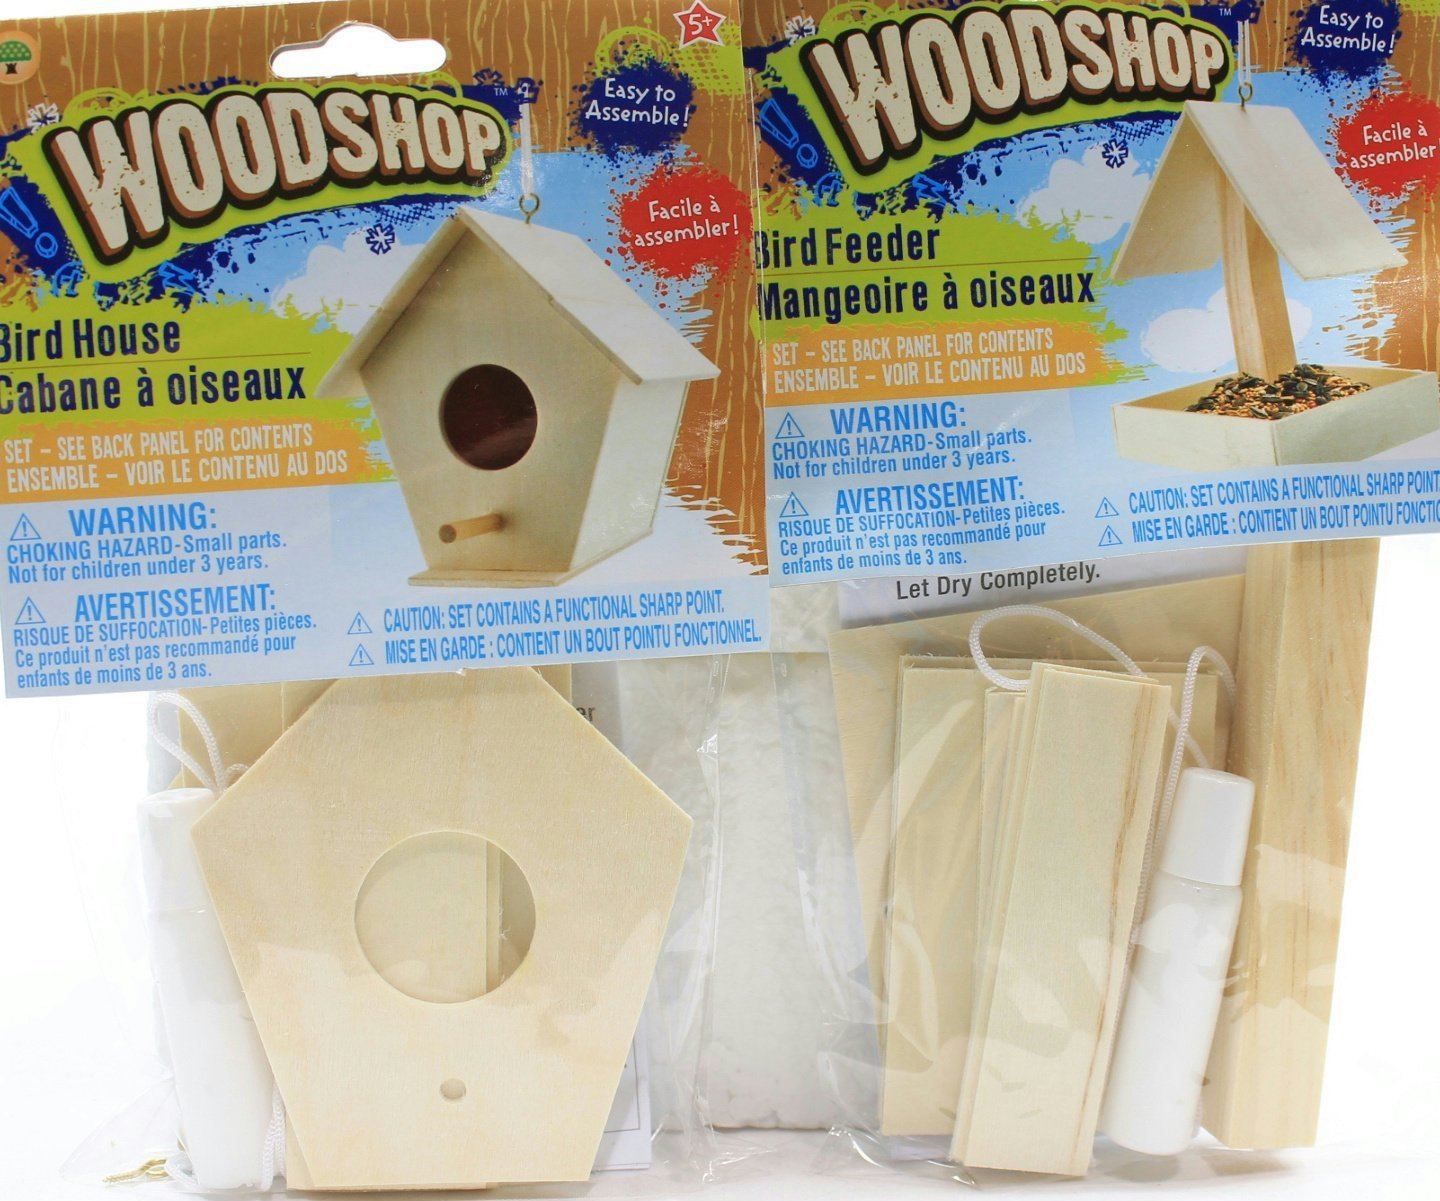 Kids Playtime Toddler Fun Set of 2 Kids DIY Woodshop Bird House and Bird Feeder MAY VARY - Easy To Assemble Activity Sets for Children